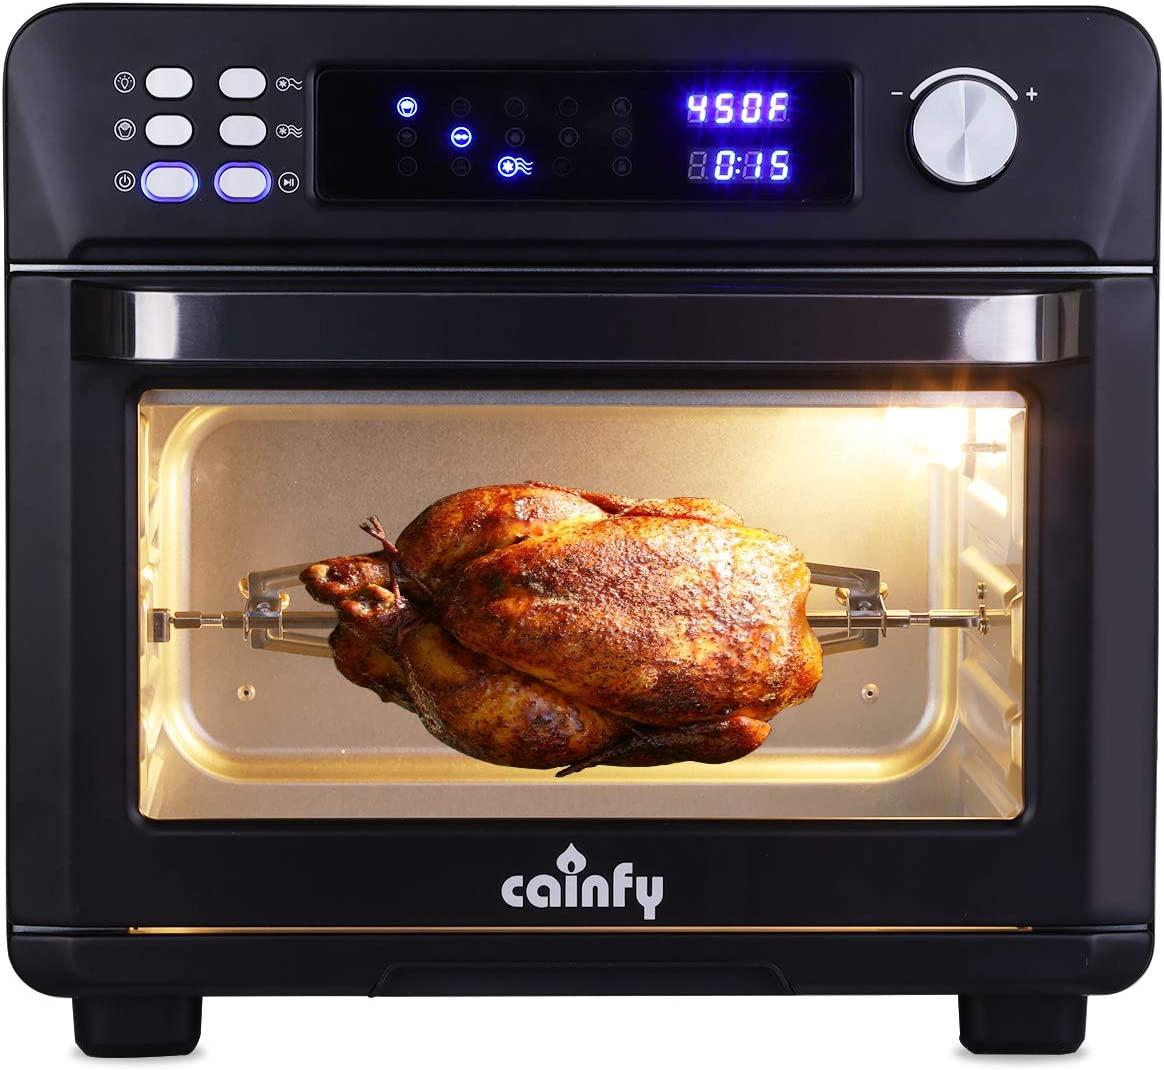 Cainfy Rotisserie Convection Toaster Oven Air Fryer Countertop Roaster Oven 25.5 Quart Toaster Oven with Timer, Temperature Control, LED Digital Display, 6 Accessories, 1700W